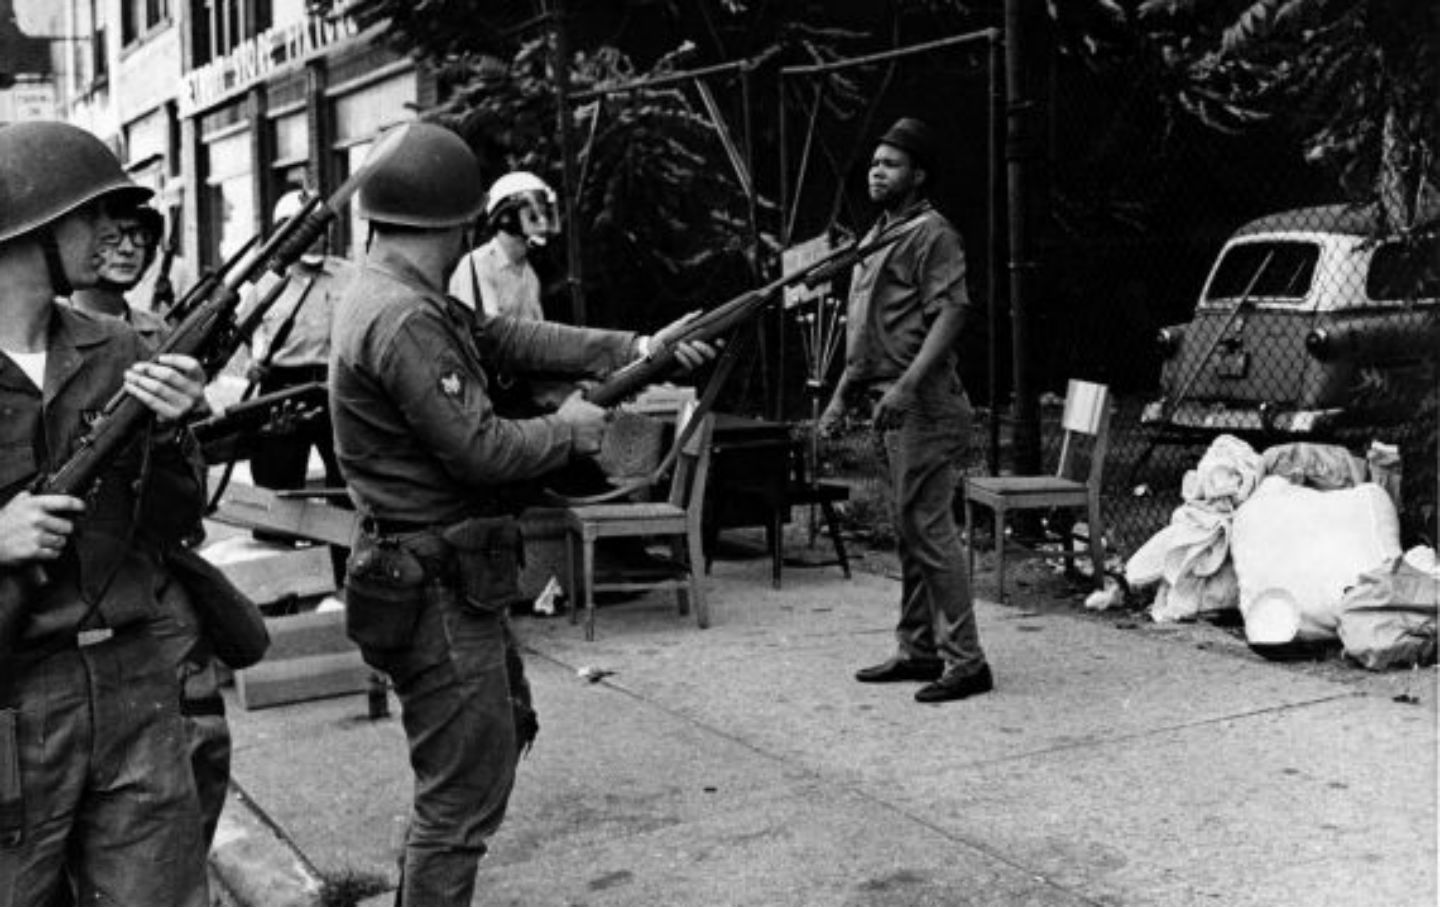 an introduction to the issue of detroit riots The newark experience 1967: the newark  chapter 5 (pp 178-253) examines coverage of the 1967 newark and detroit riots by  with an new introduction by warren.